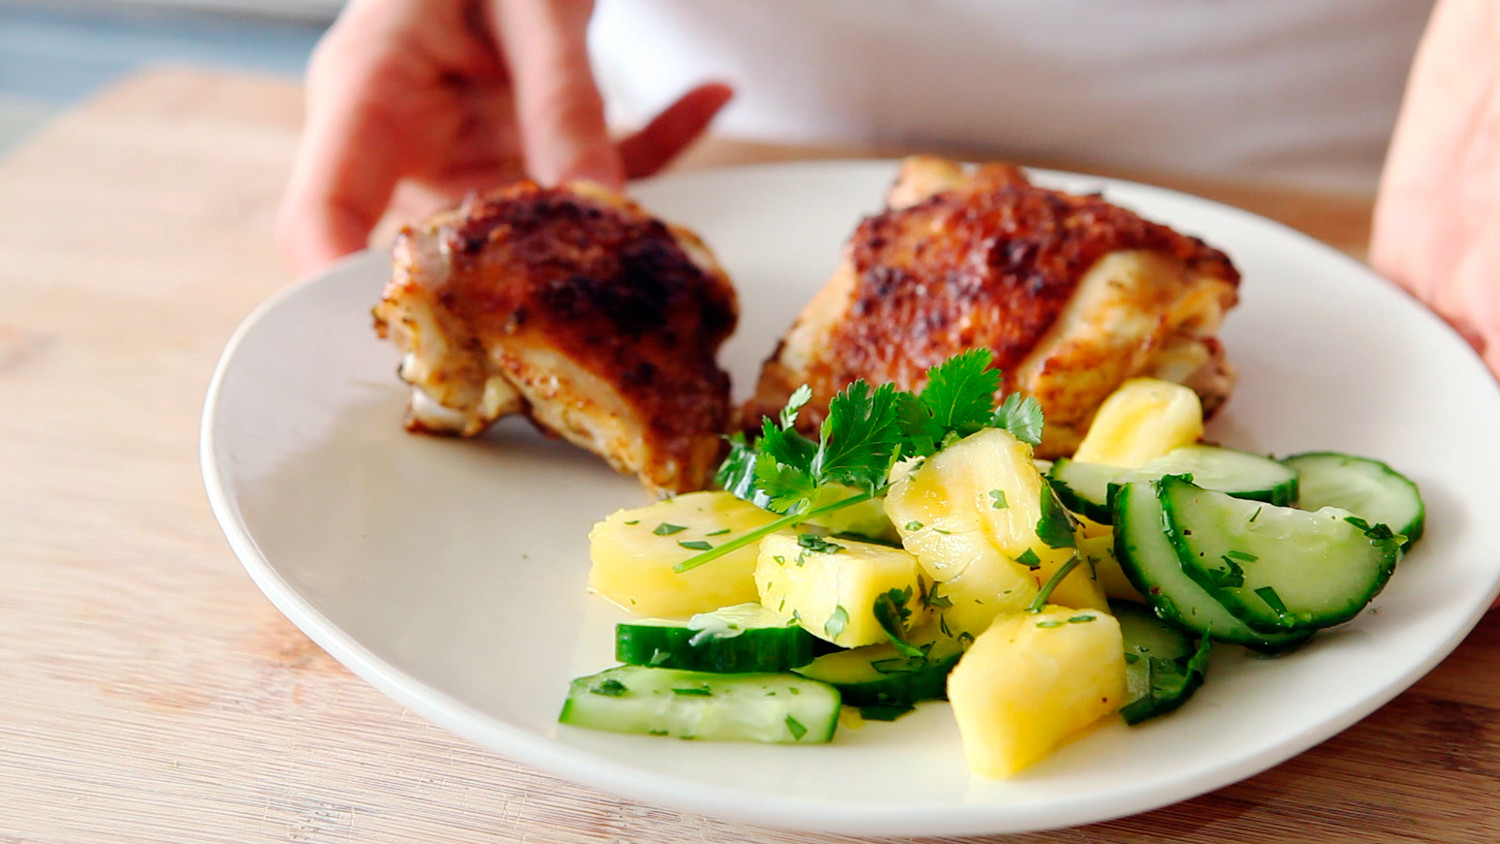 Video broiled chicken thighs with pineapple cucumber salad martha video broiled chicken thighs with pineapple cucumber salad martha stewart forumfinder Gallery